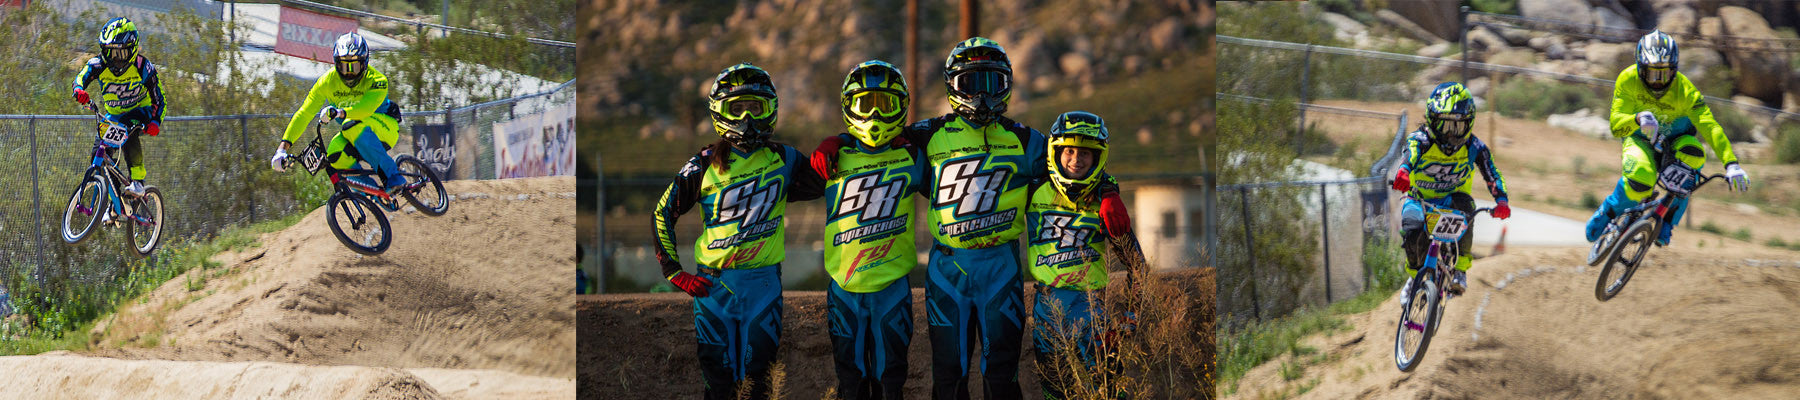 Supercross BMX Sponsorship Image